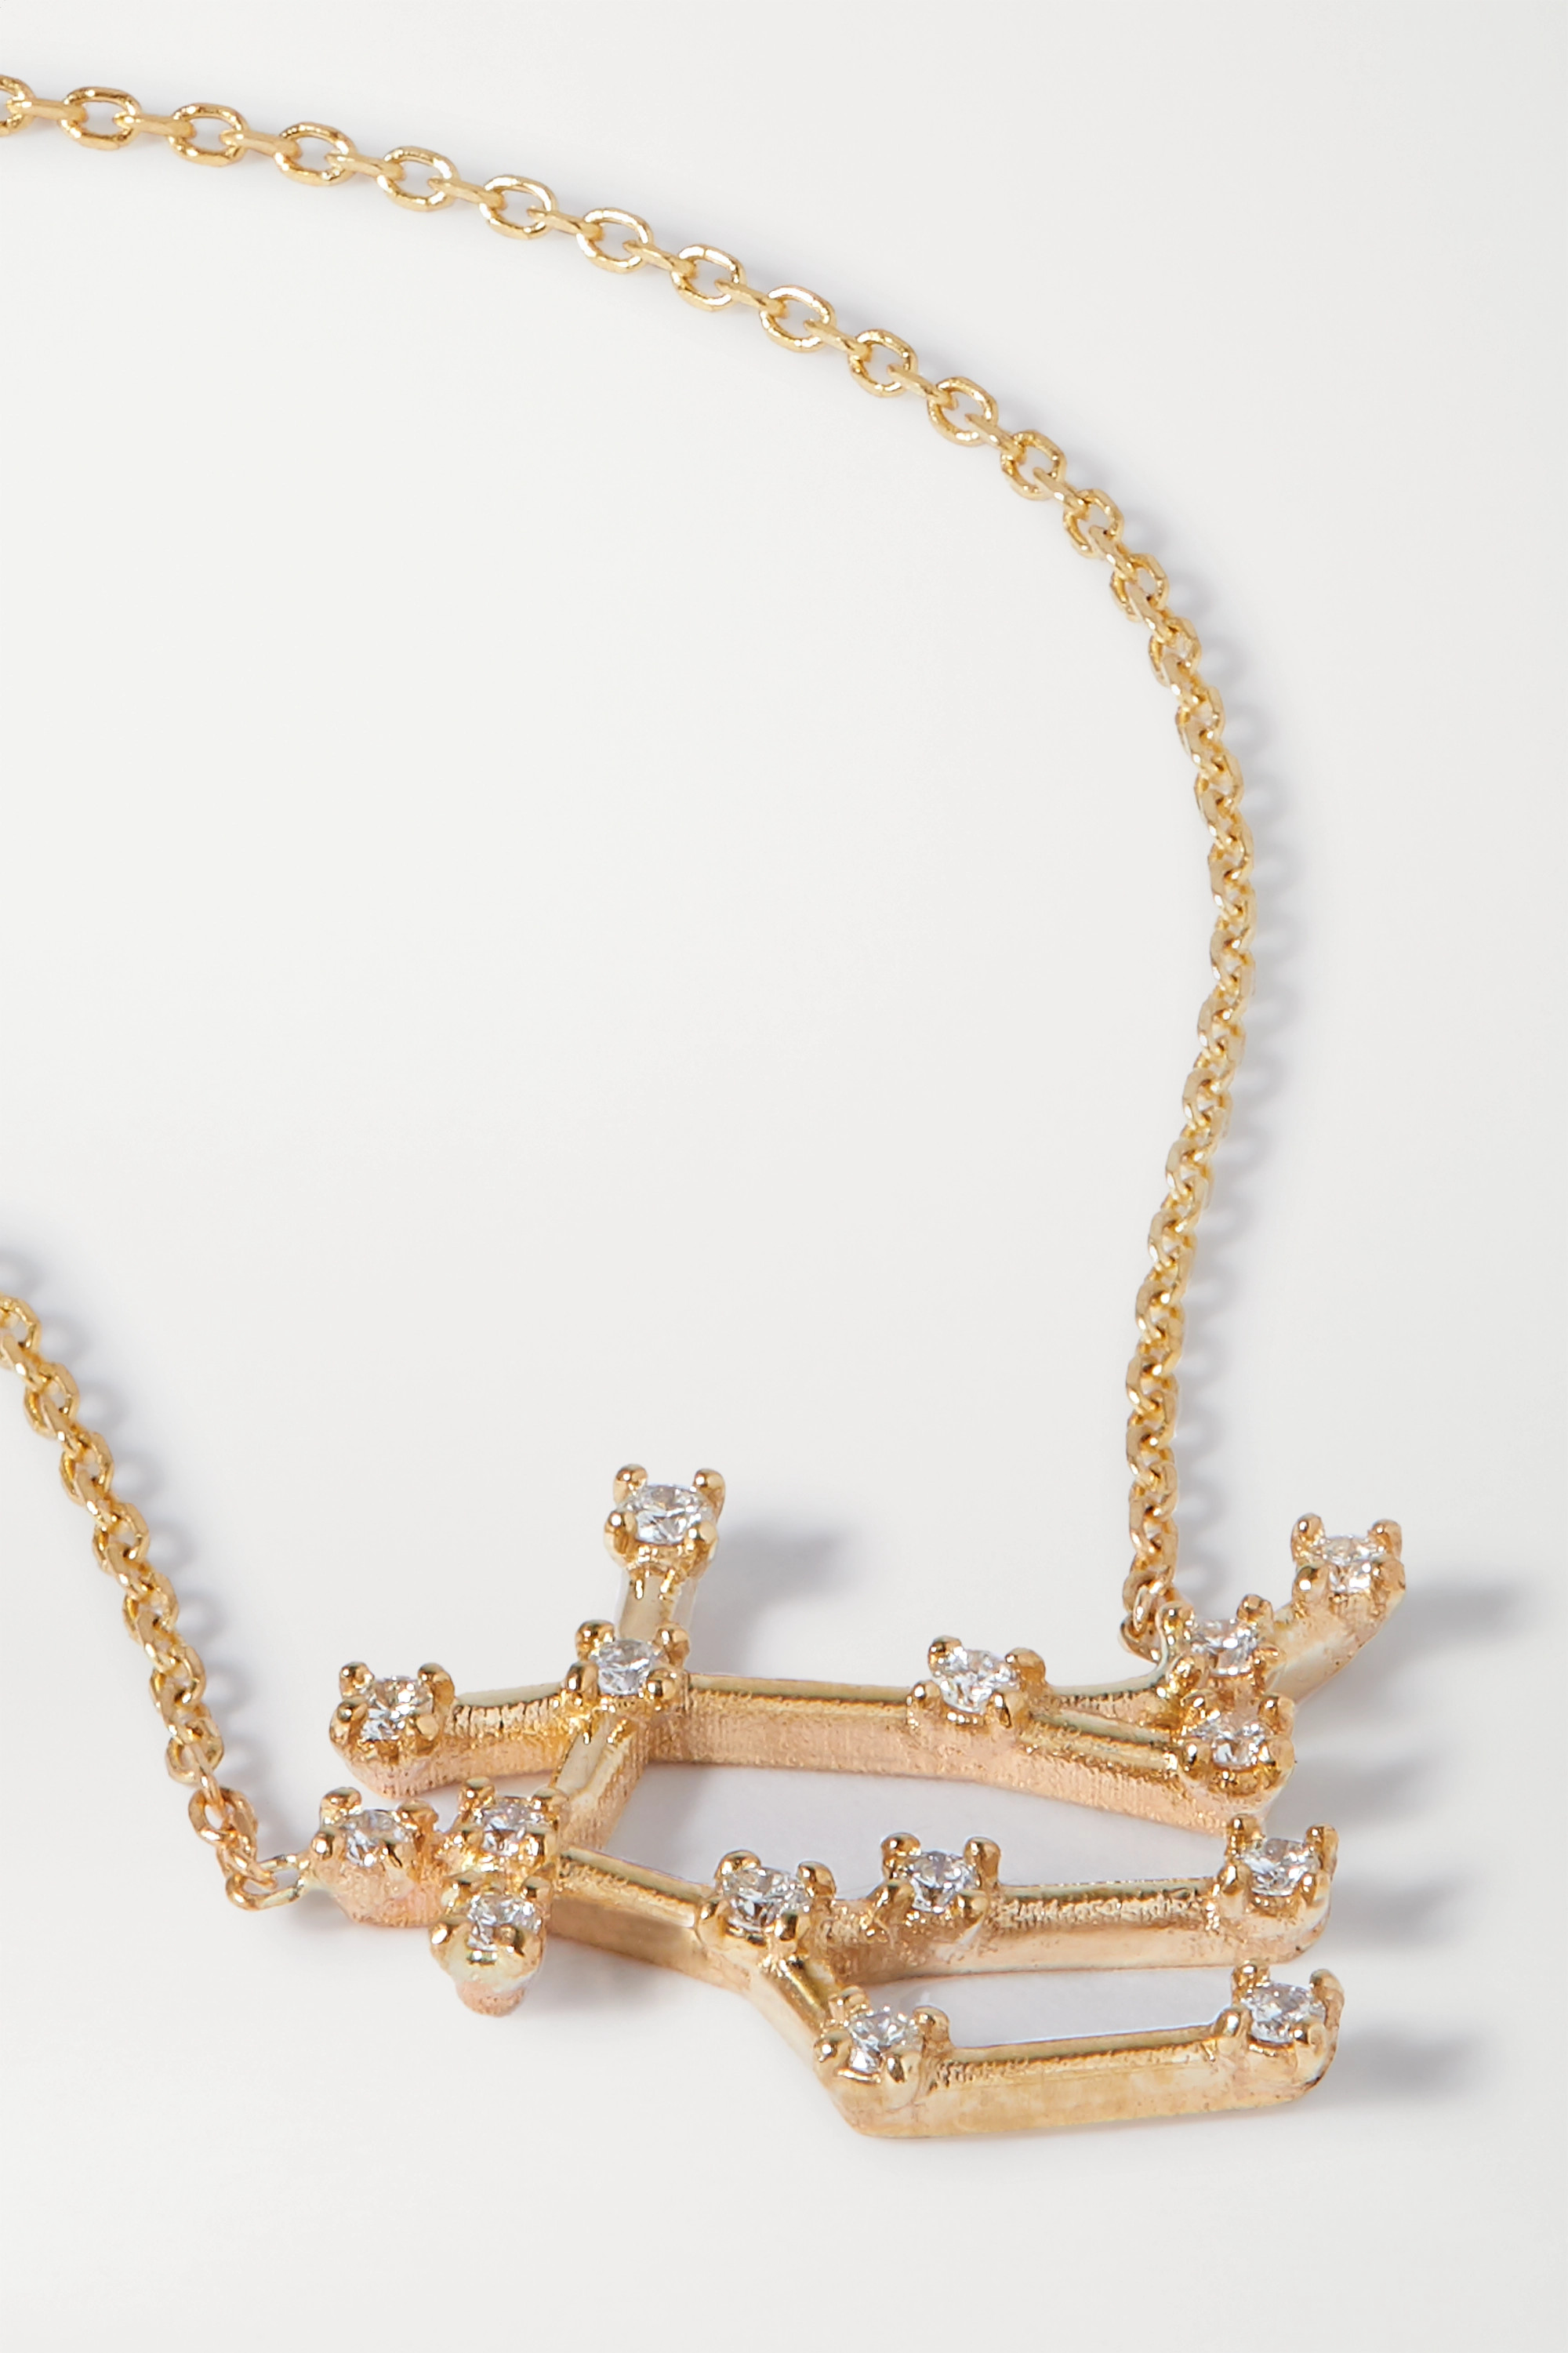 SARAH & SEBASTIAN Celestial Gemini 10-karat gold diamond necklace